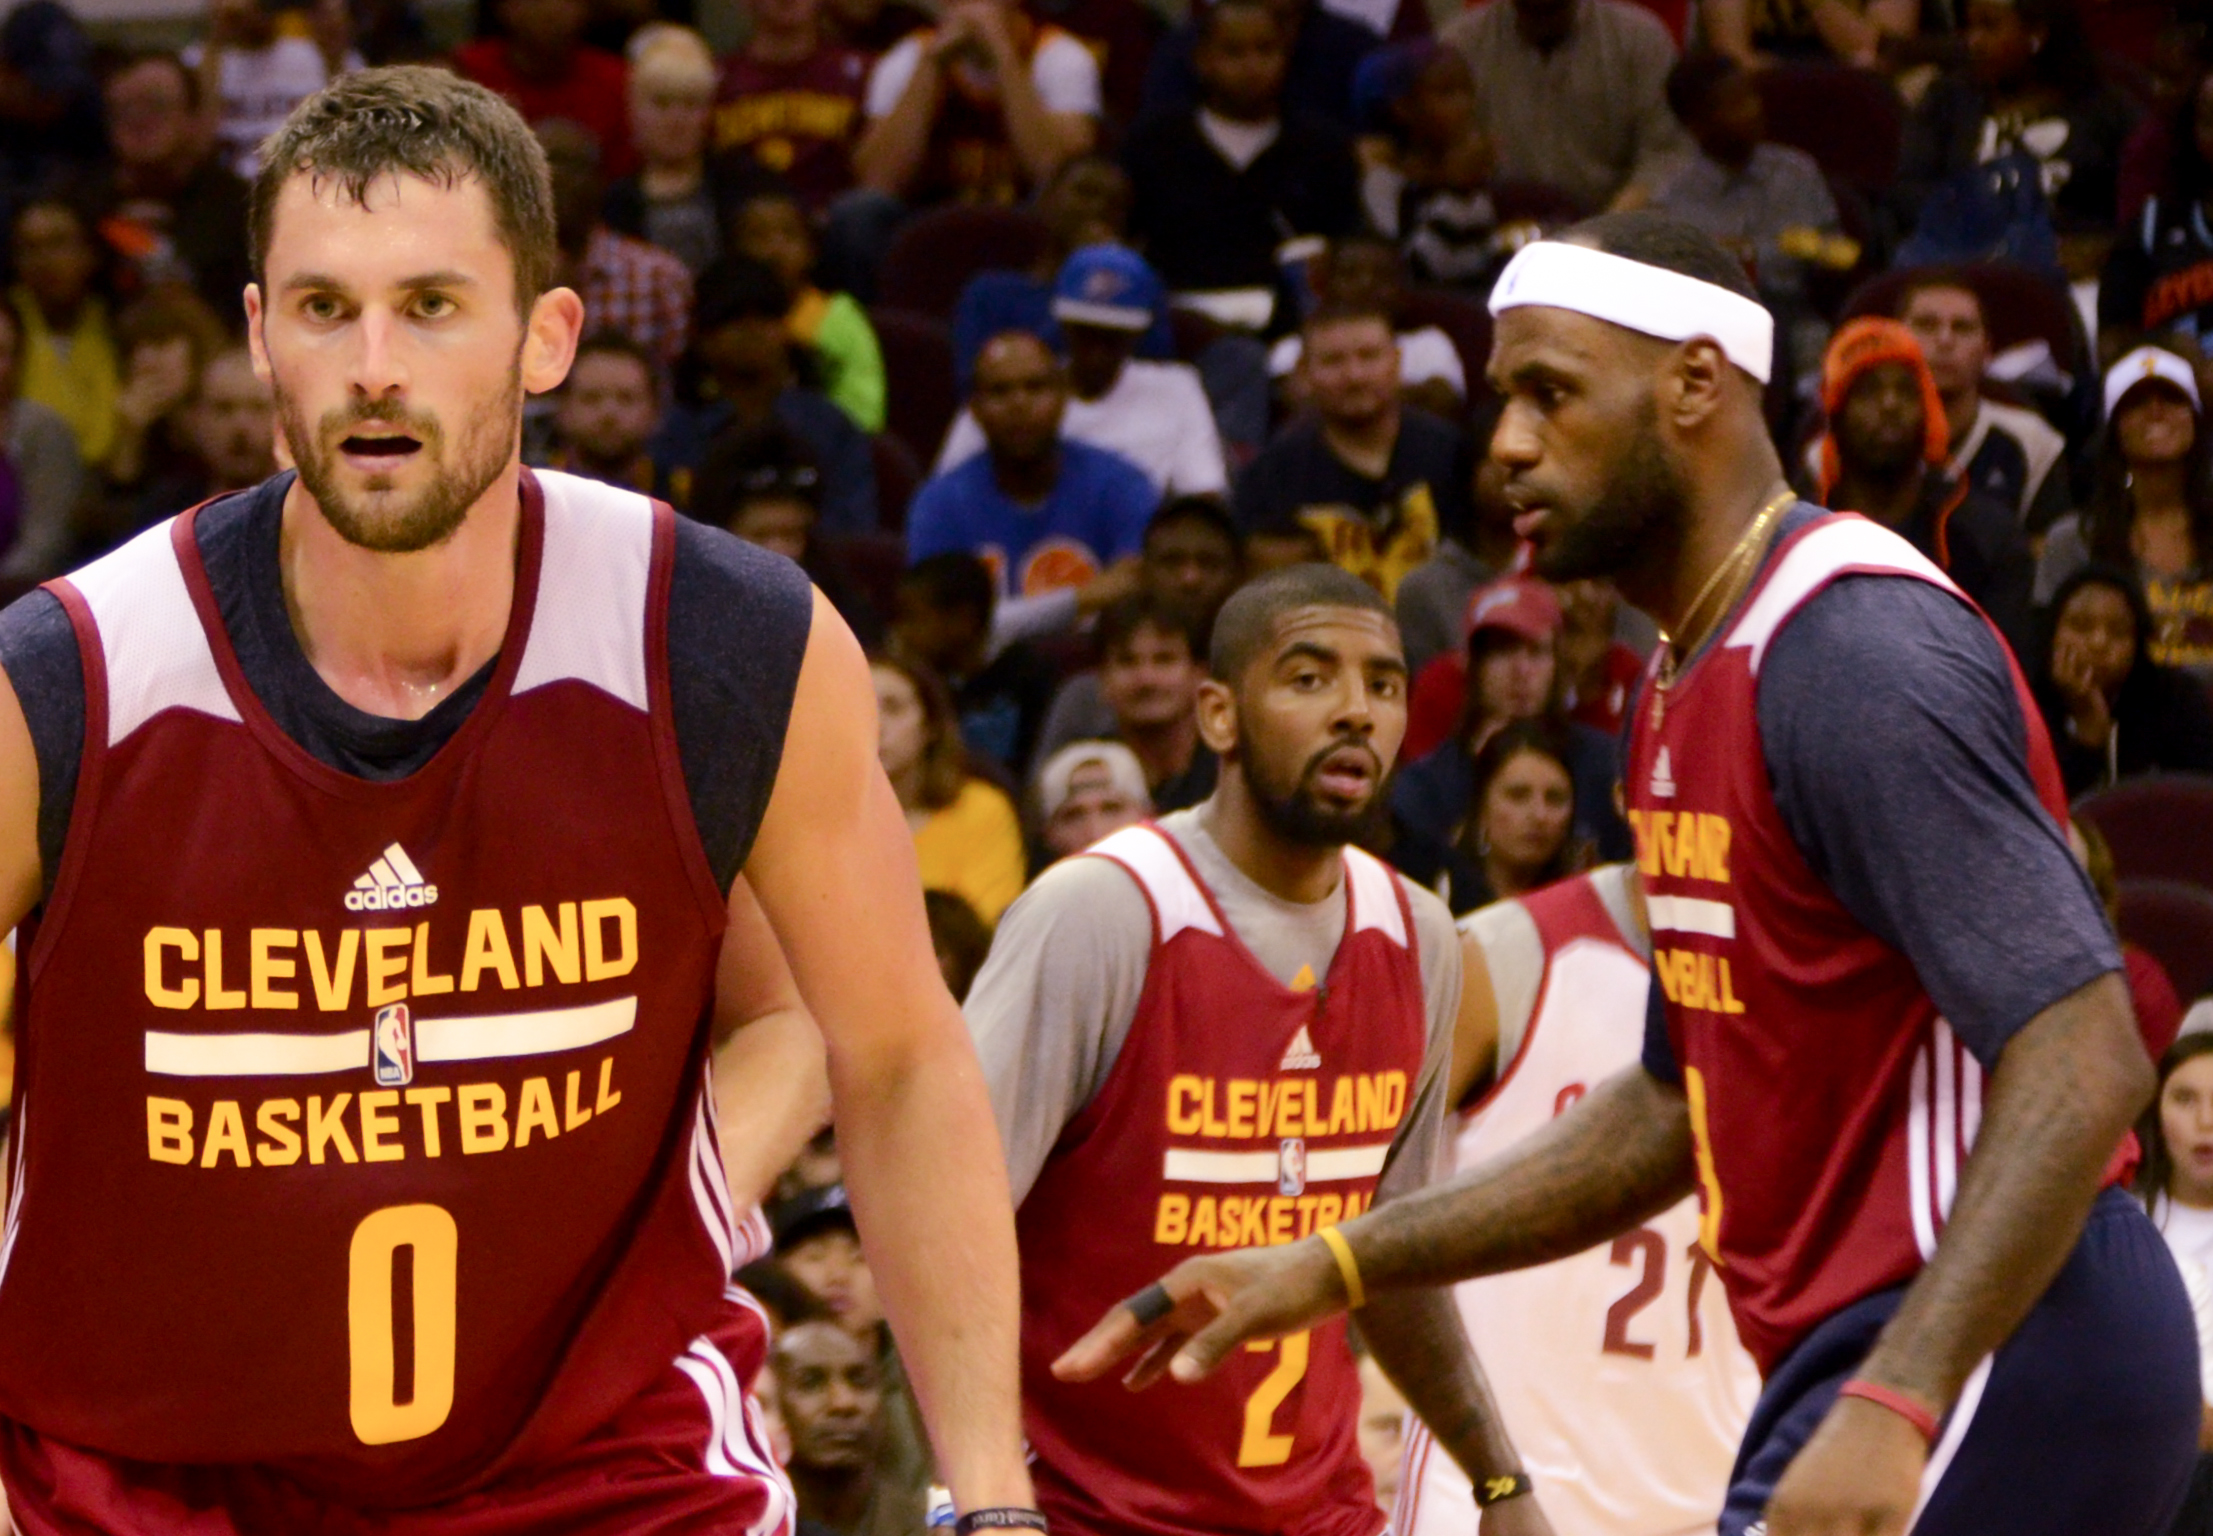 Kevin_Love,_Kyrie_Irving,_and_LeBron_James_2014.jpg